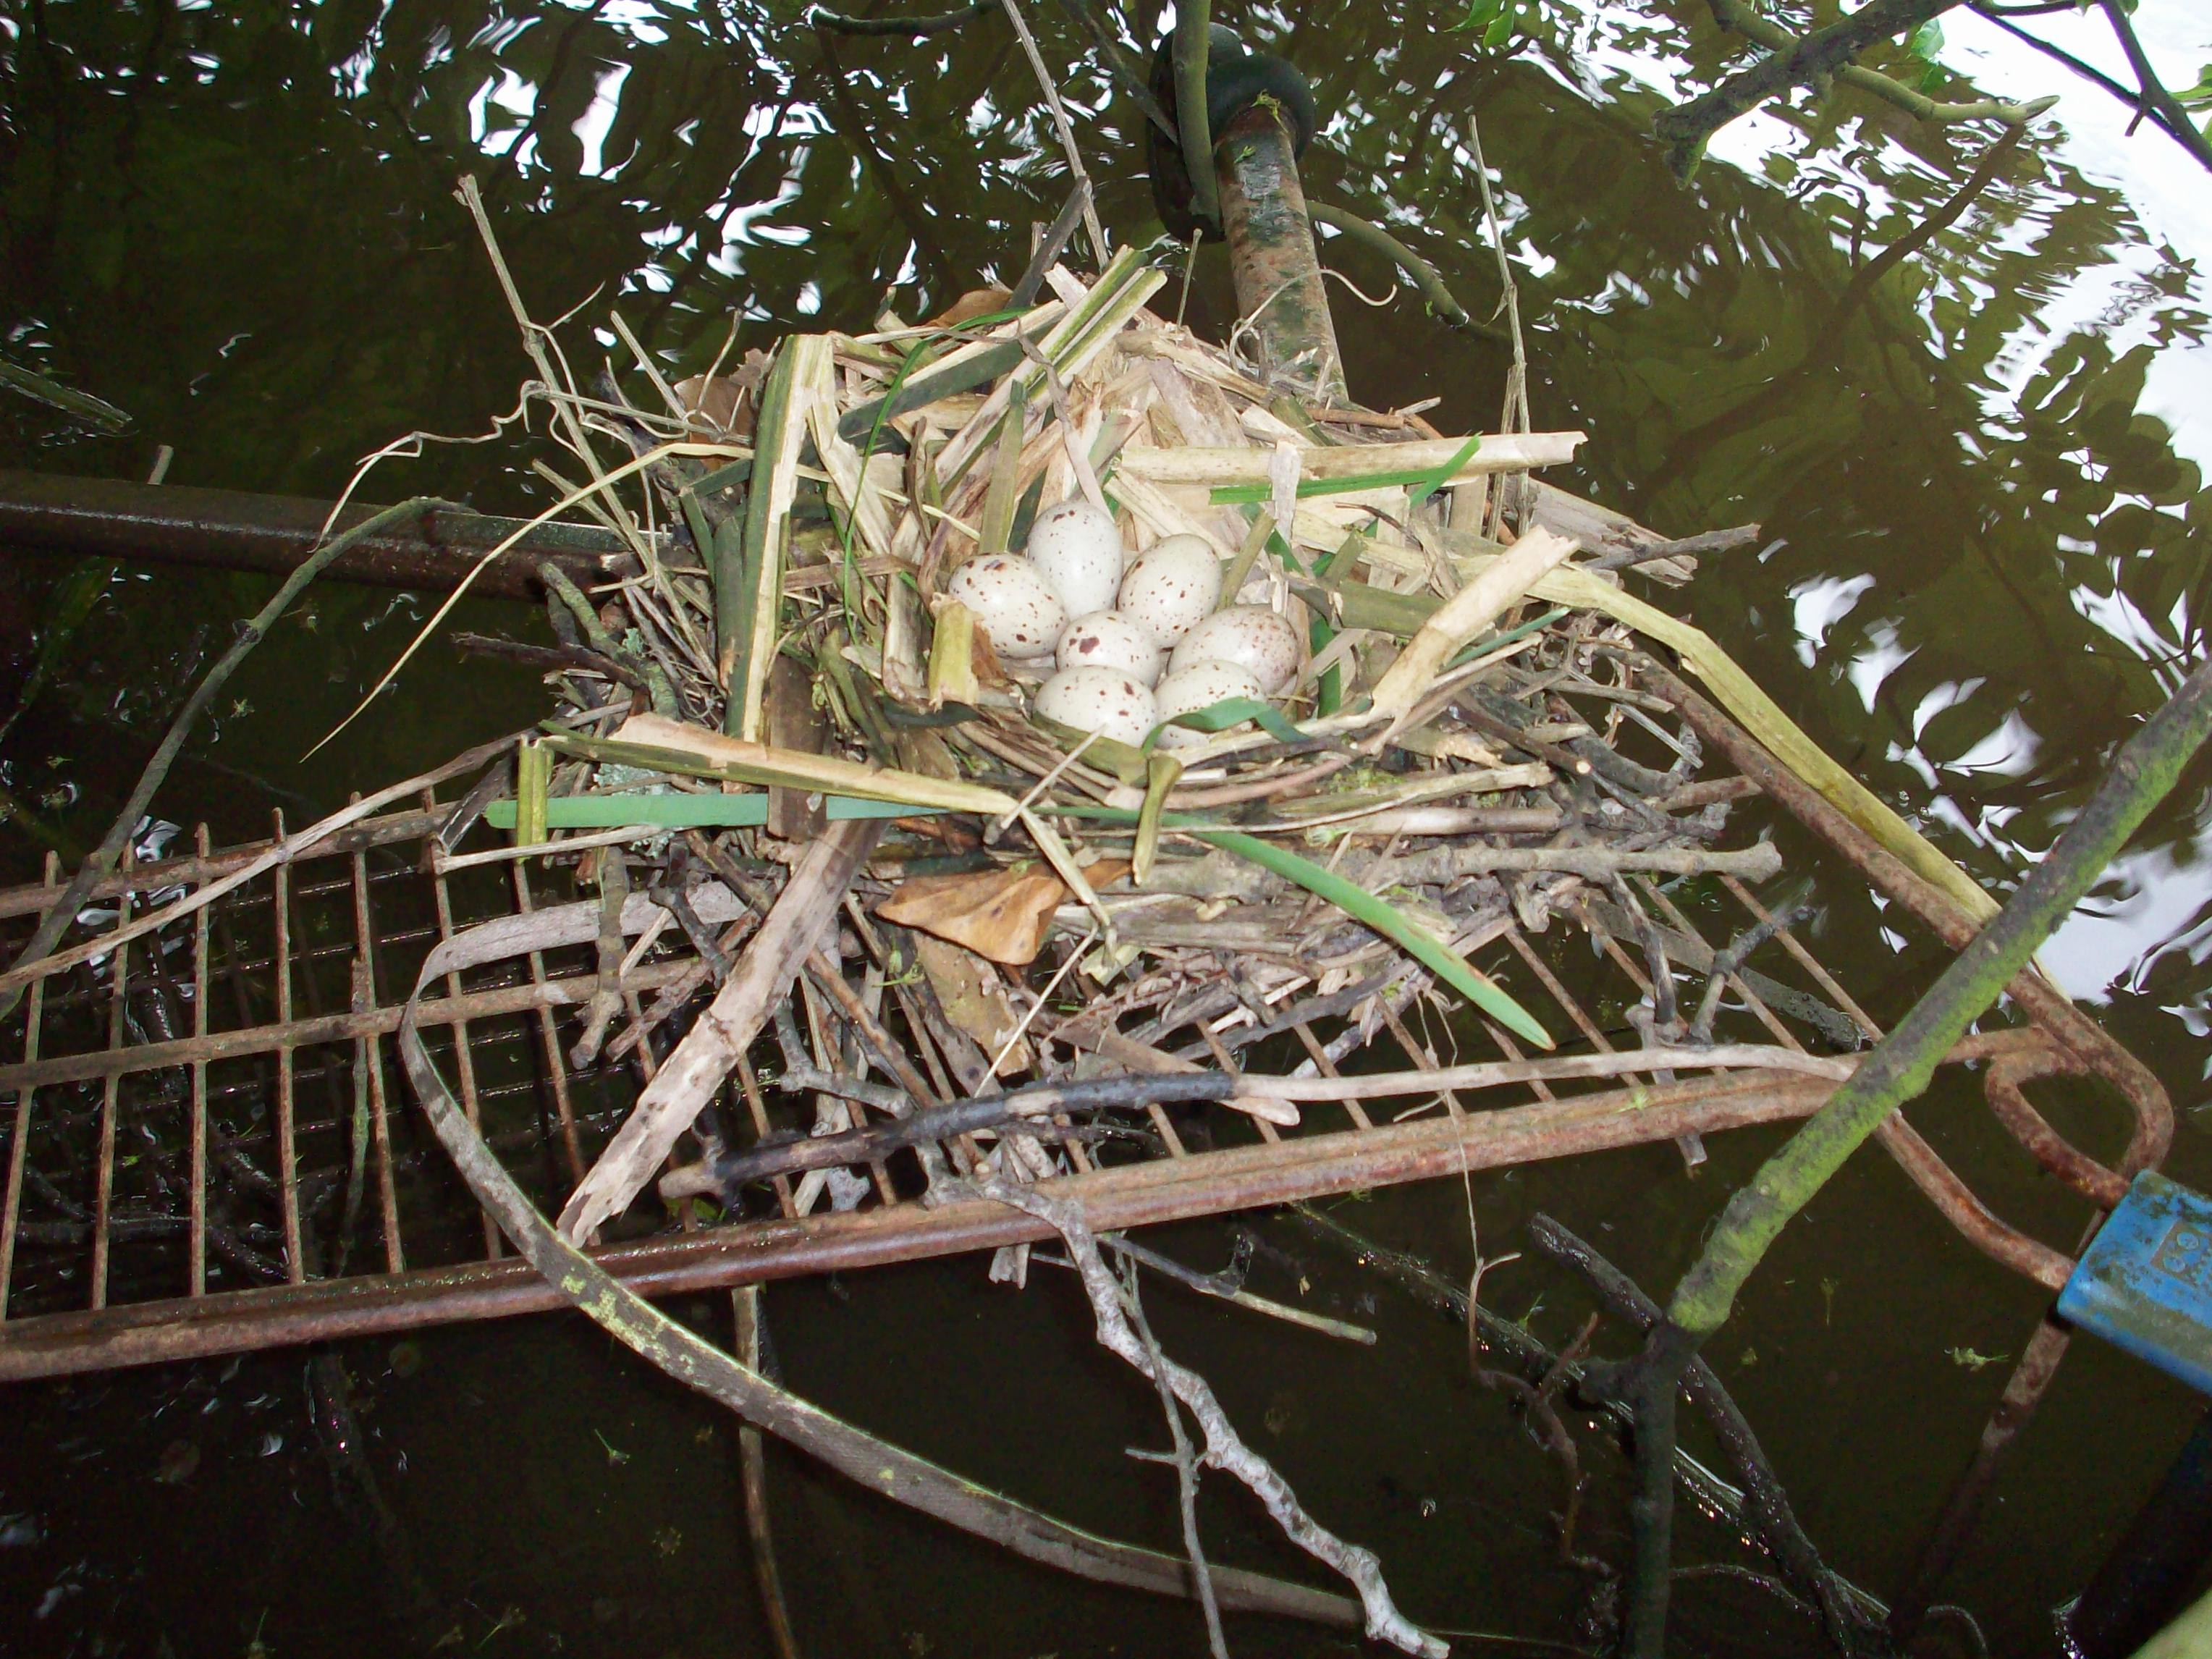 Nest build on top of shopping trolley